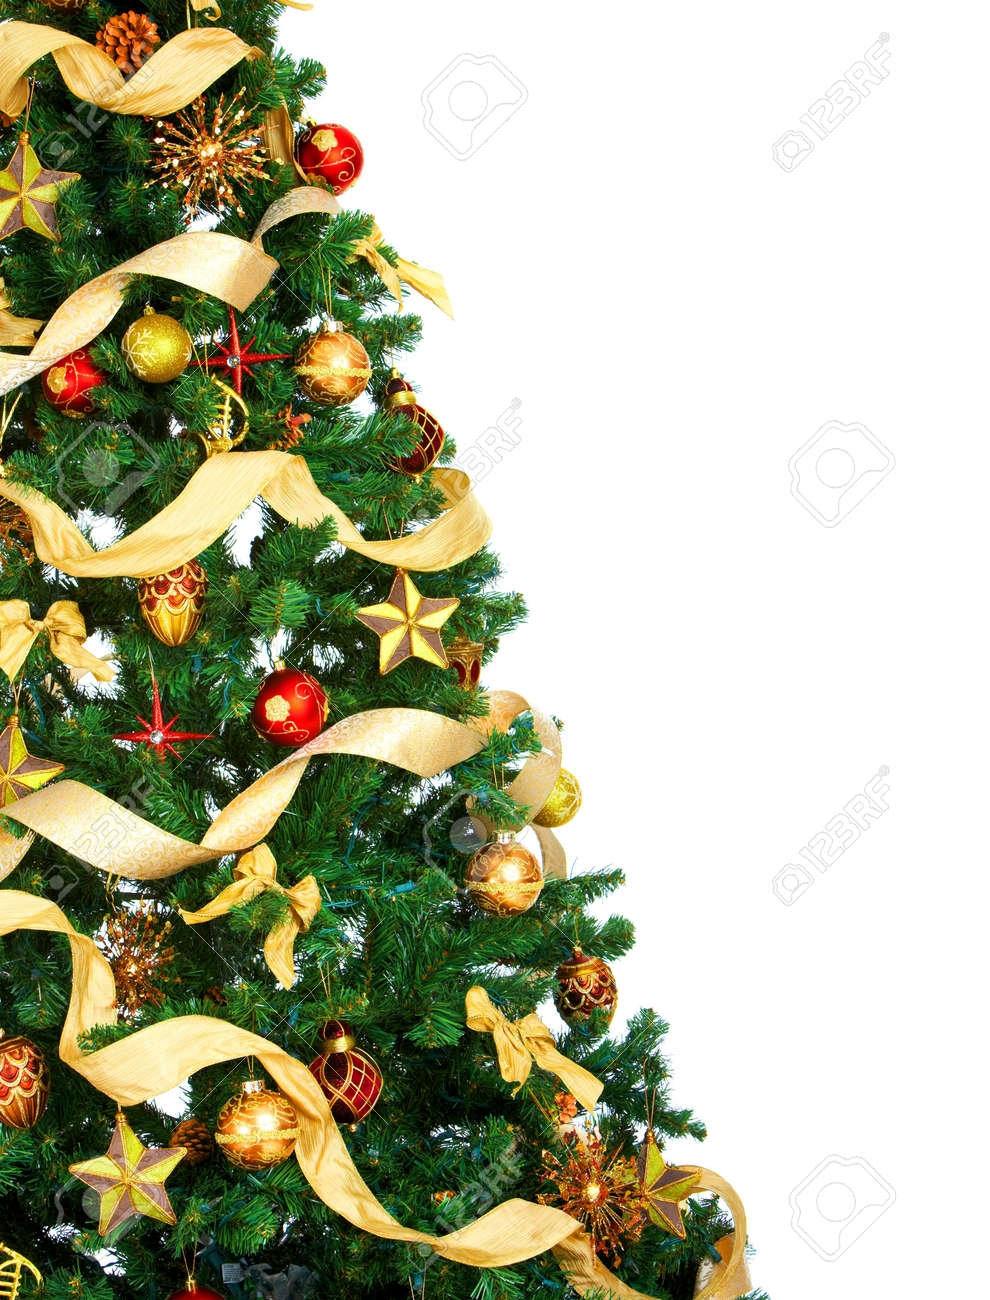 Christmas Tree White Background.Christmas Tree And Decorations Over White Background